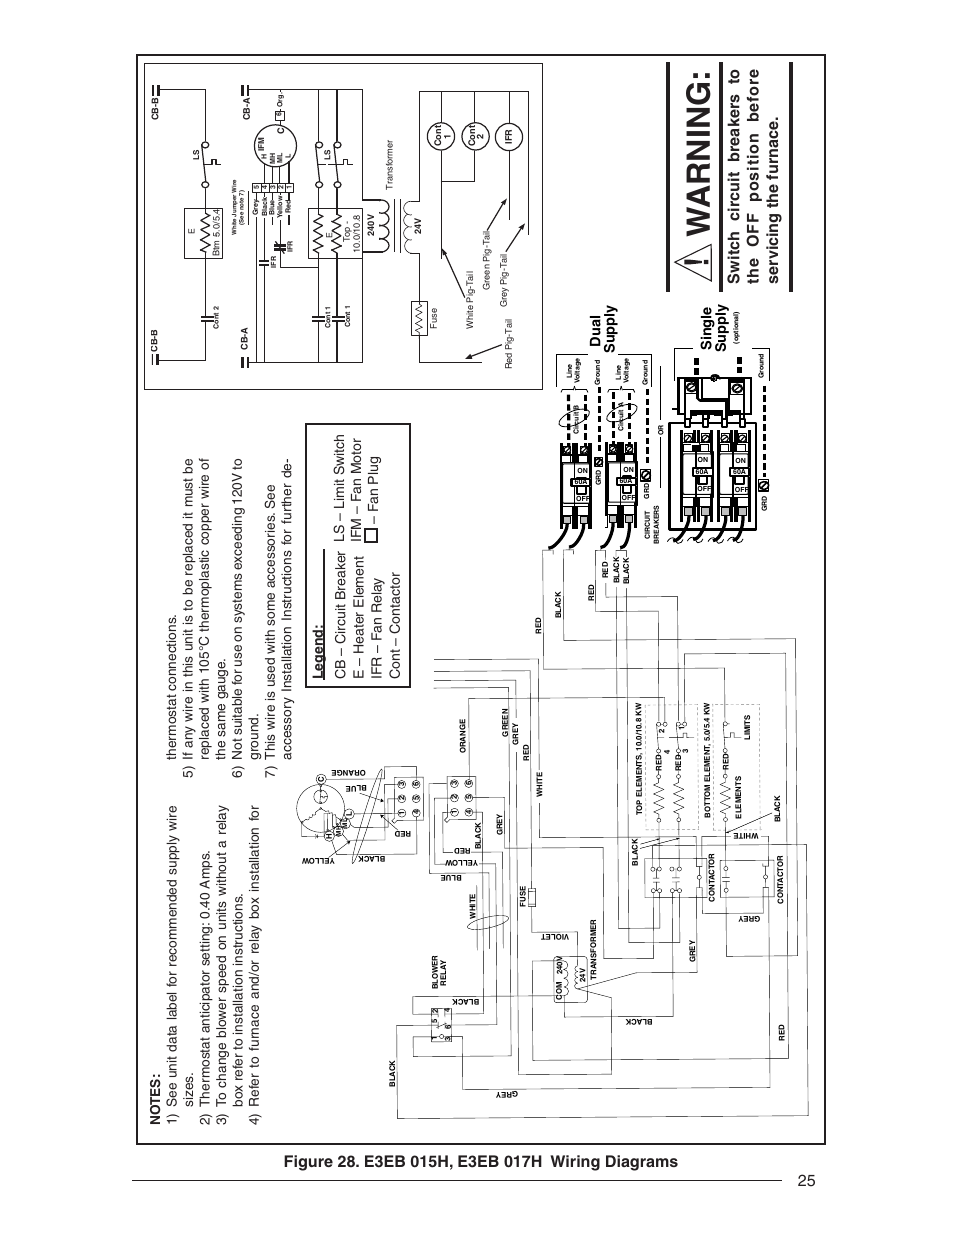 old nordyne furnaces wiring diagram image nordyne furnace wiring diagram for fan warning, single suppl y, dual suppl y | nordyne e3 series ...